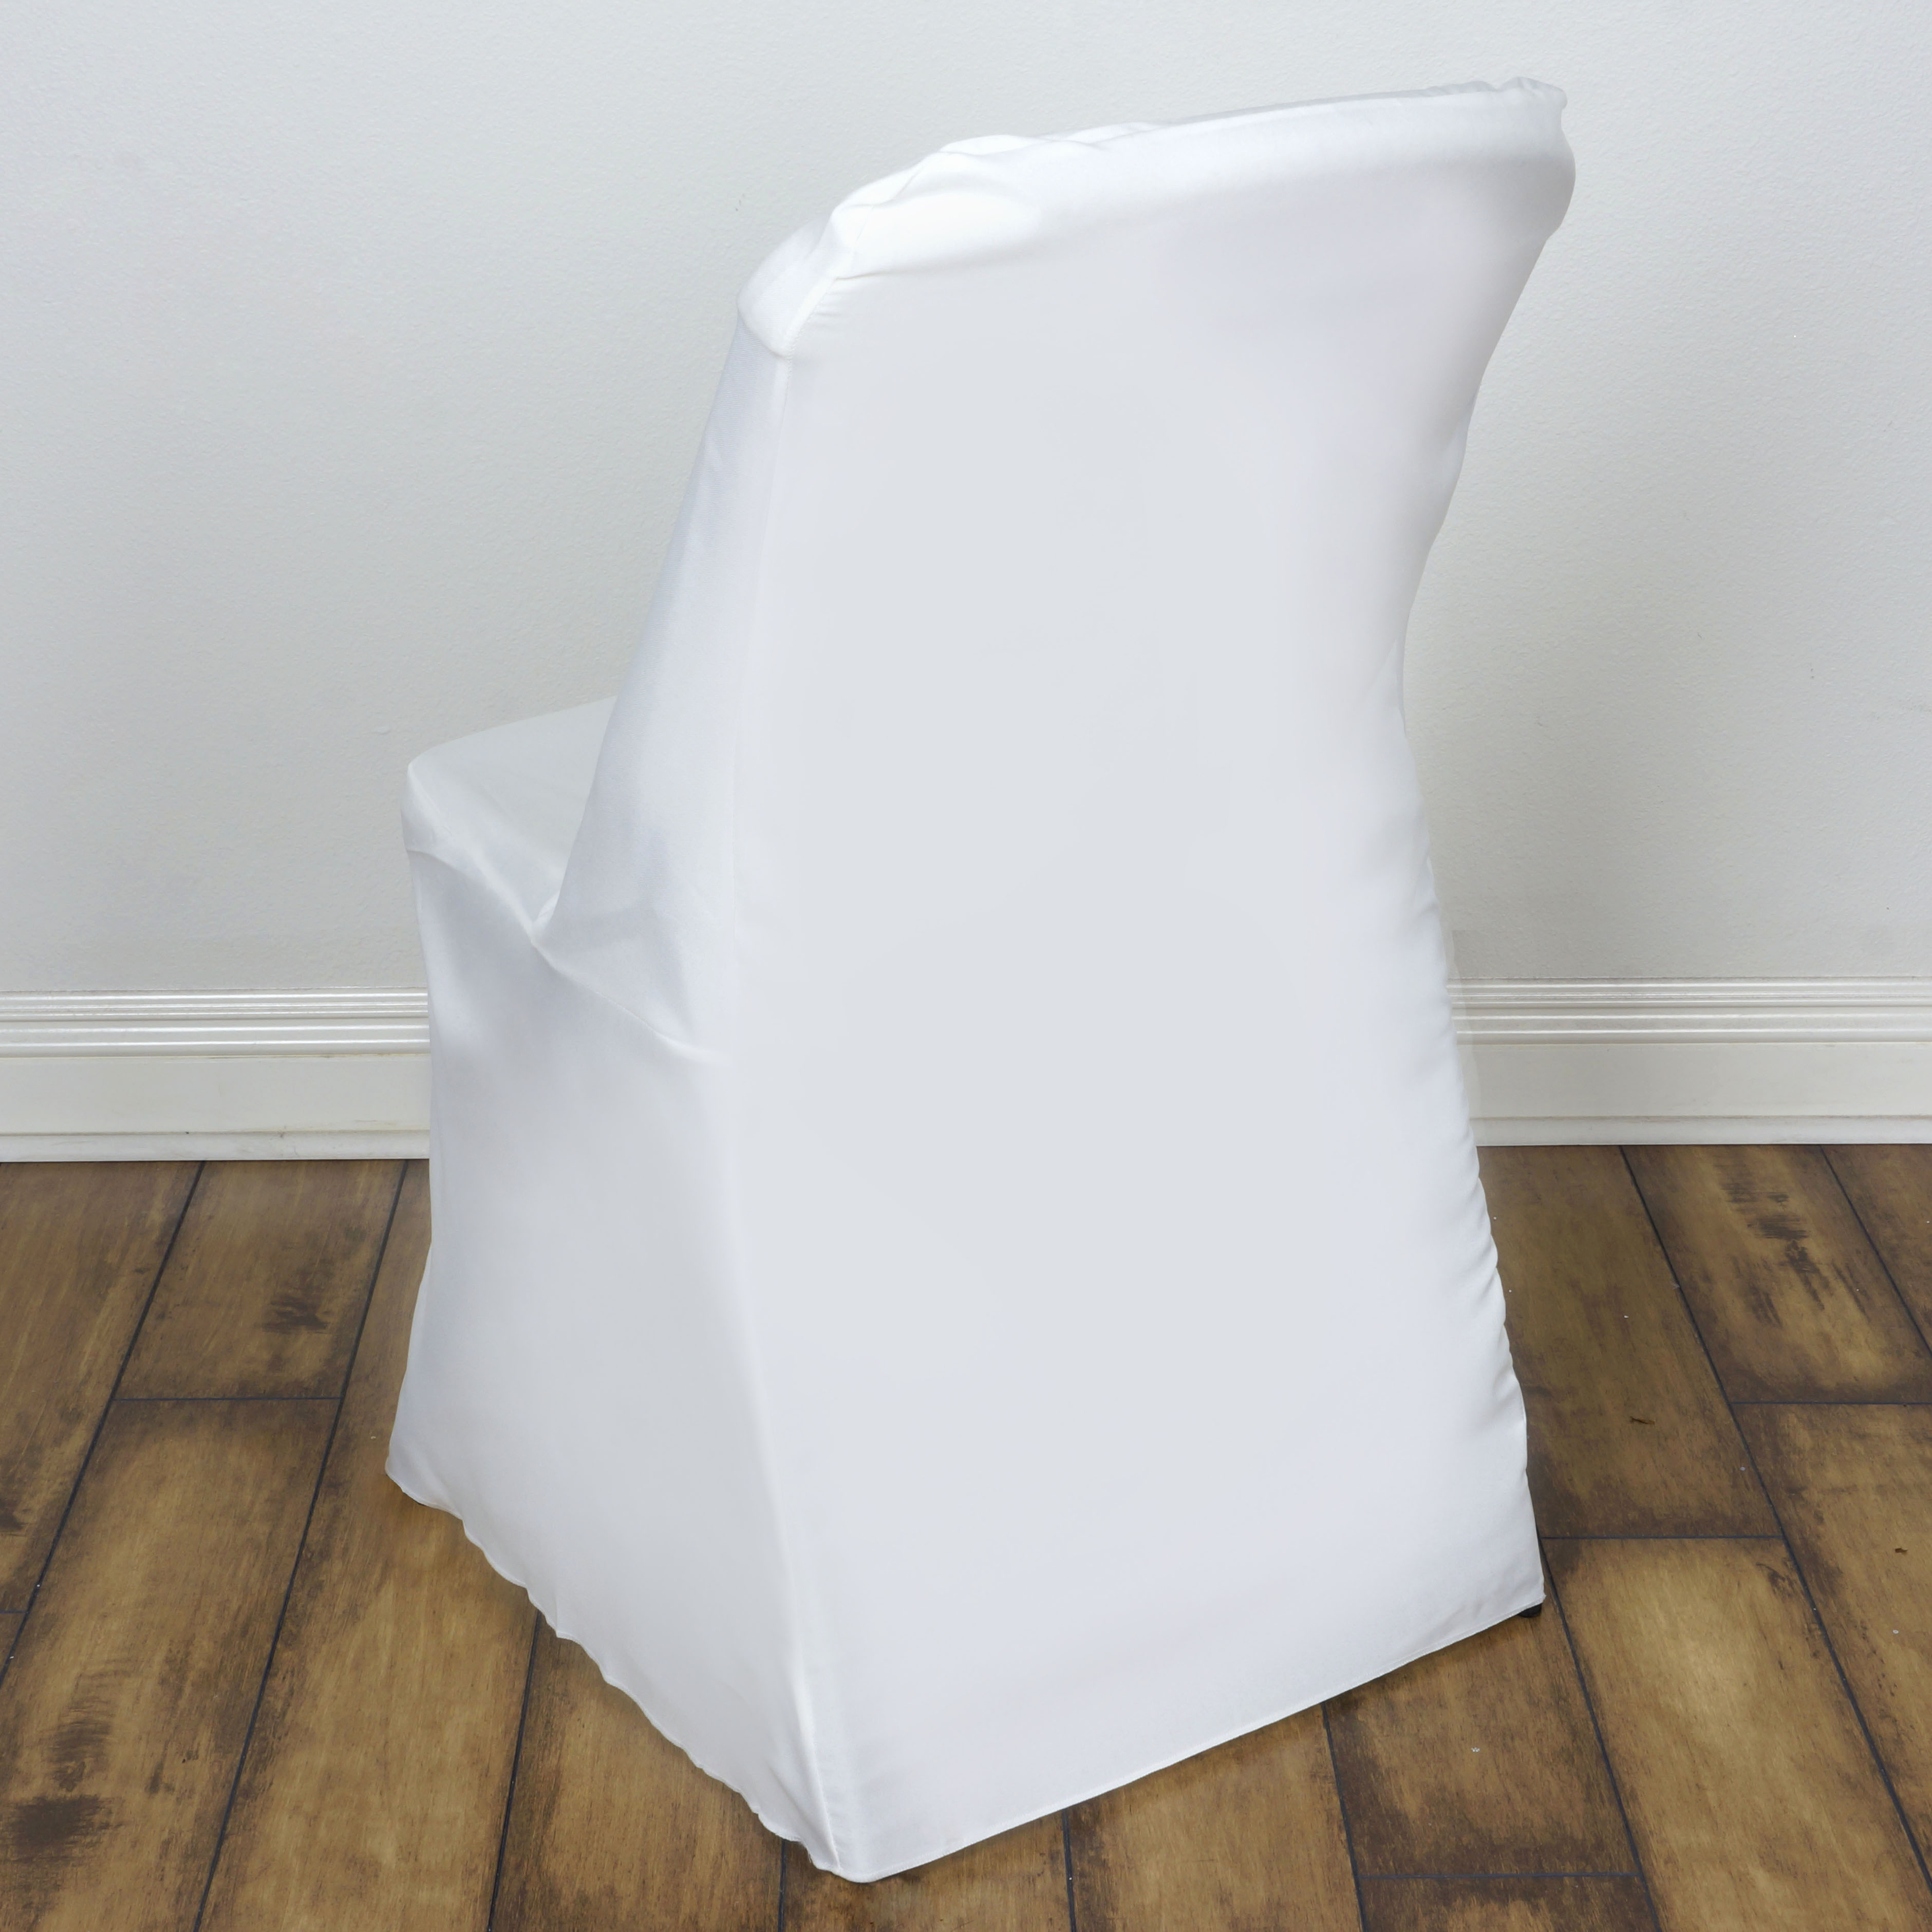 25 Pcs Lifetime Folding Chair Covers Slipcovers Polyester